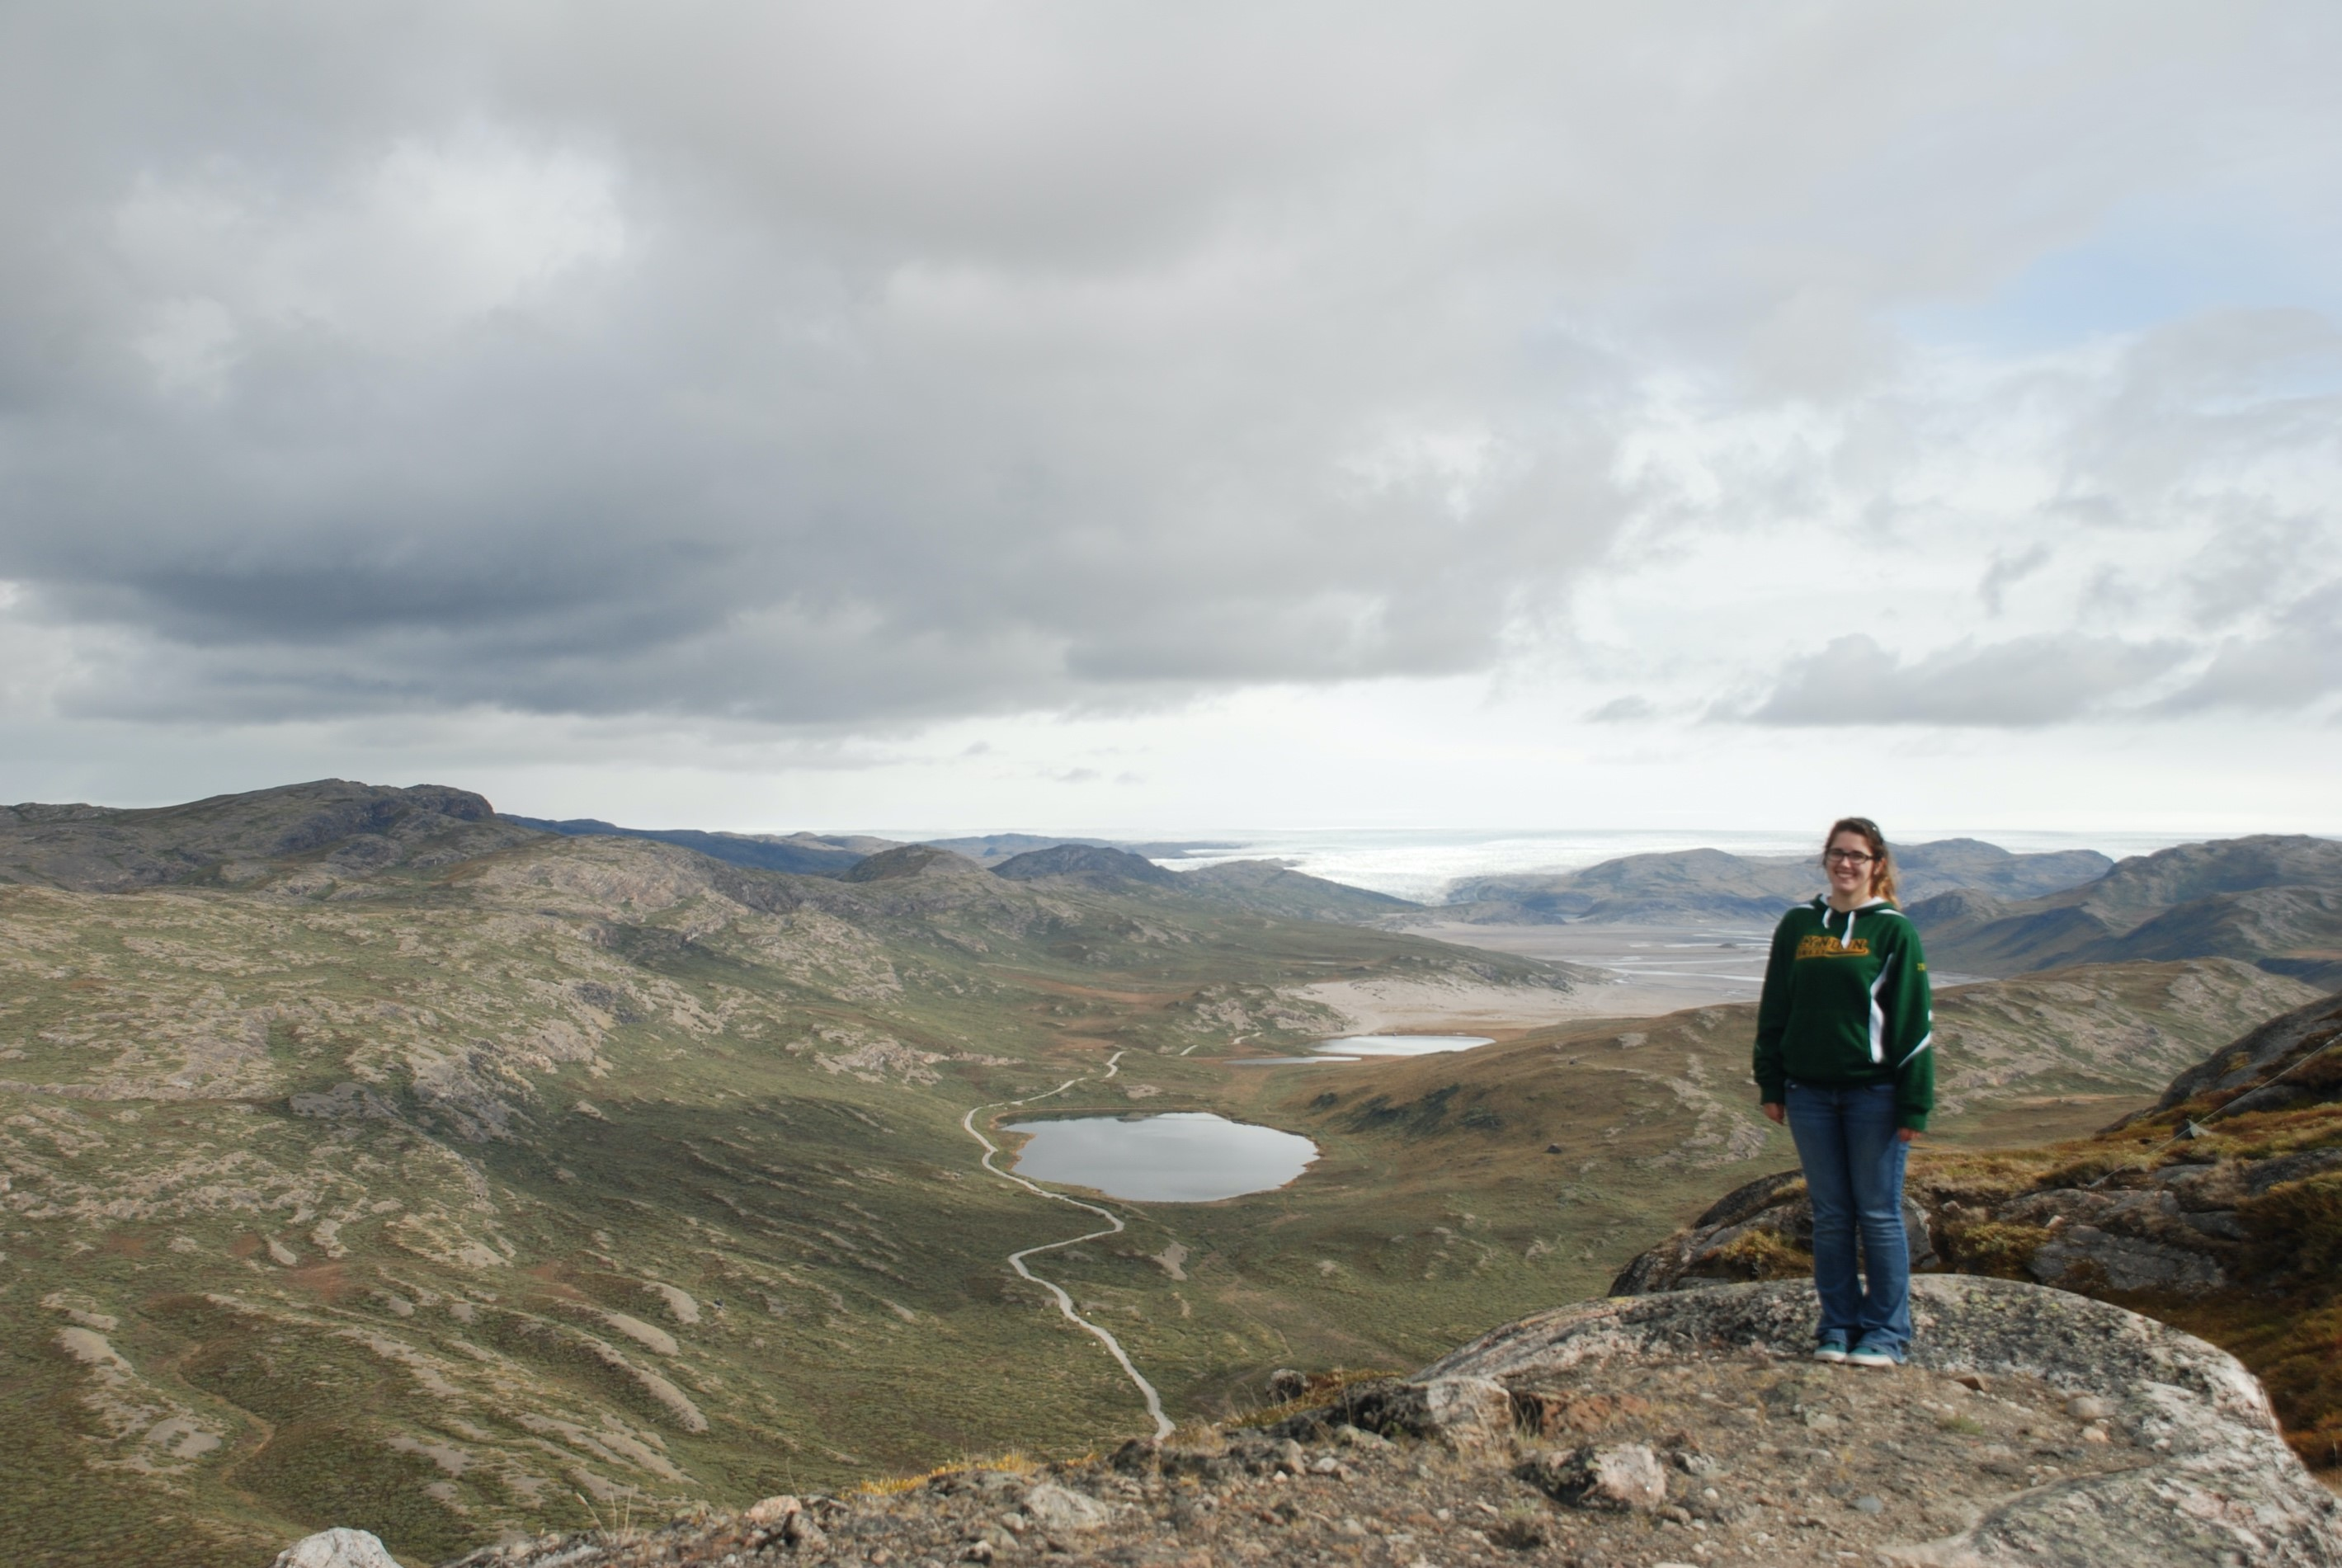 Hiking in Greenland, Murphy stayed in Kangerlussuaq when she traveled to Summit Station, Greenland, to assist with instrument calibration in 2015.